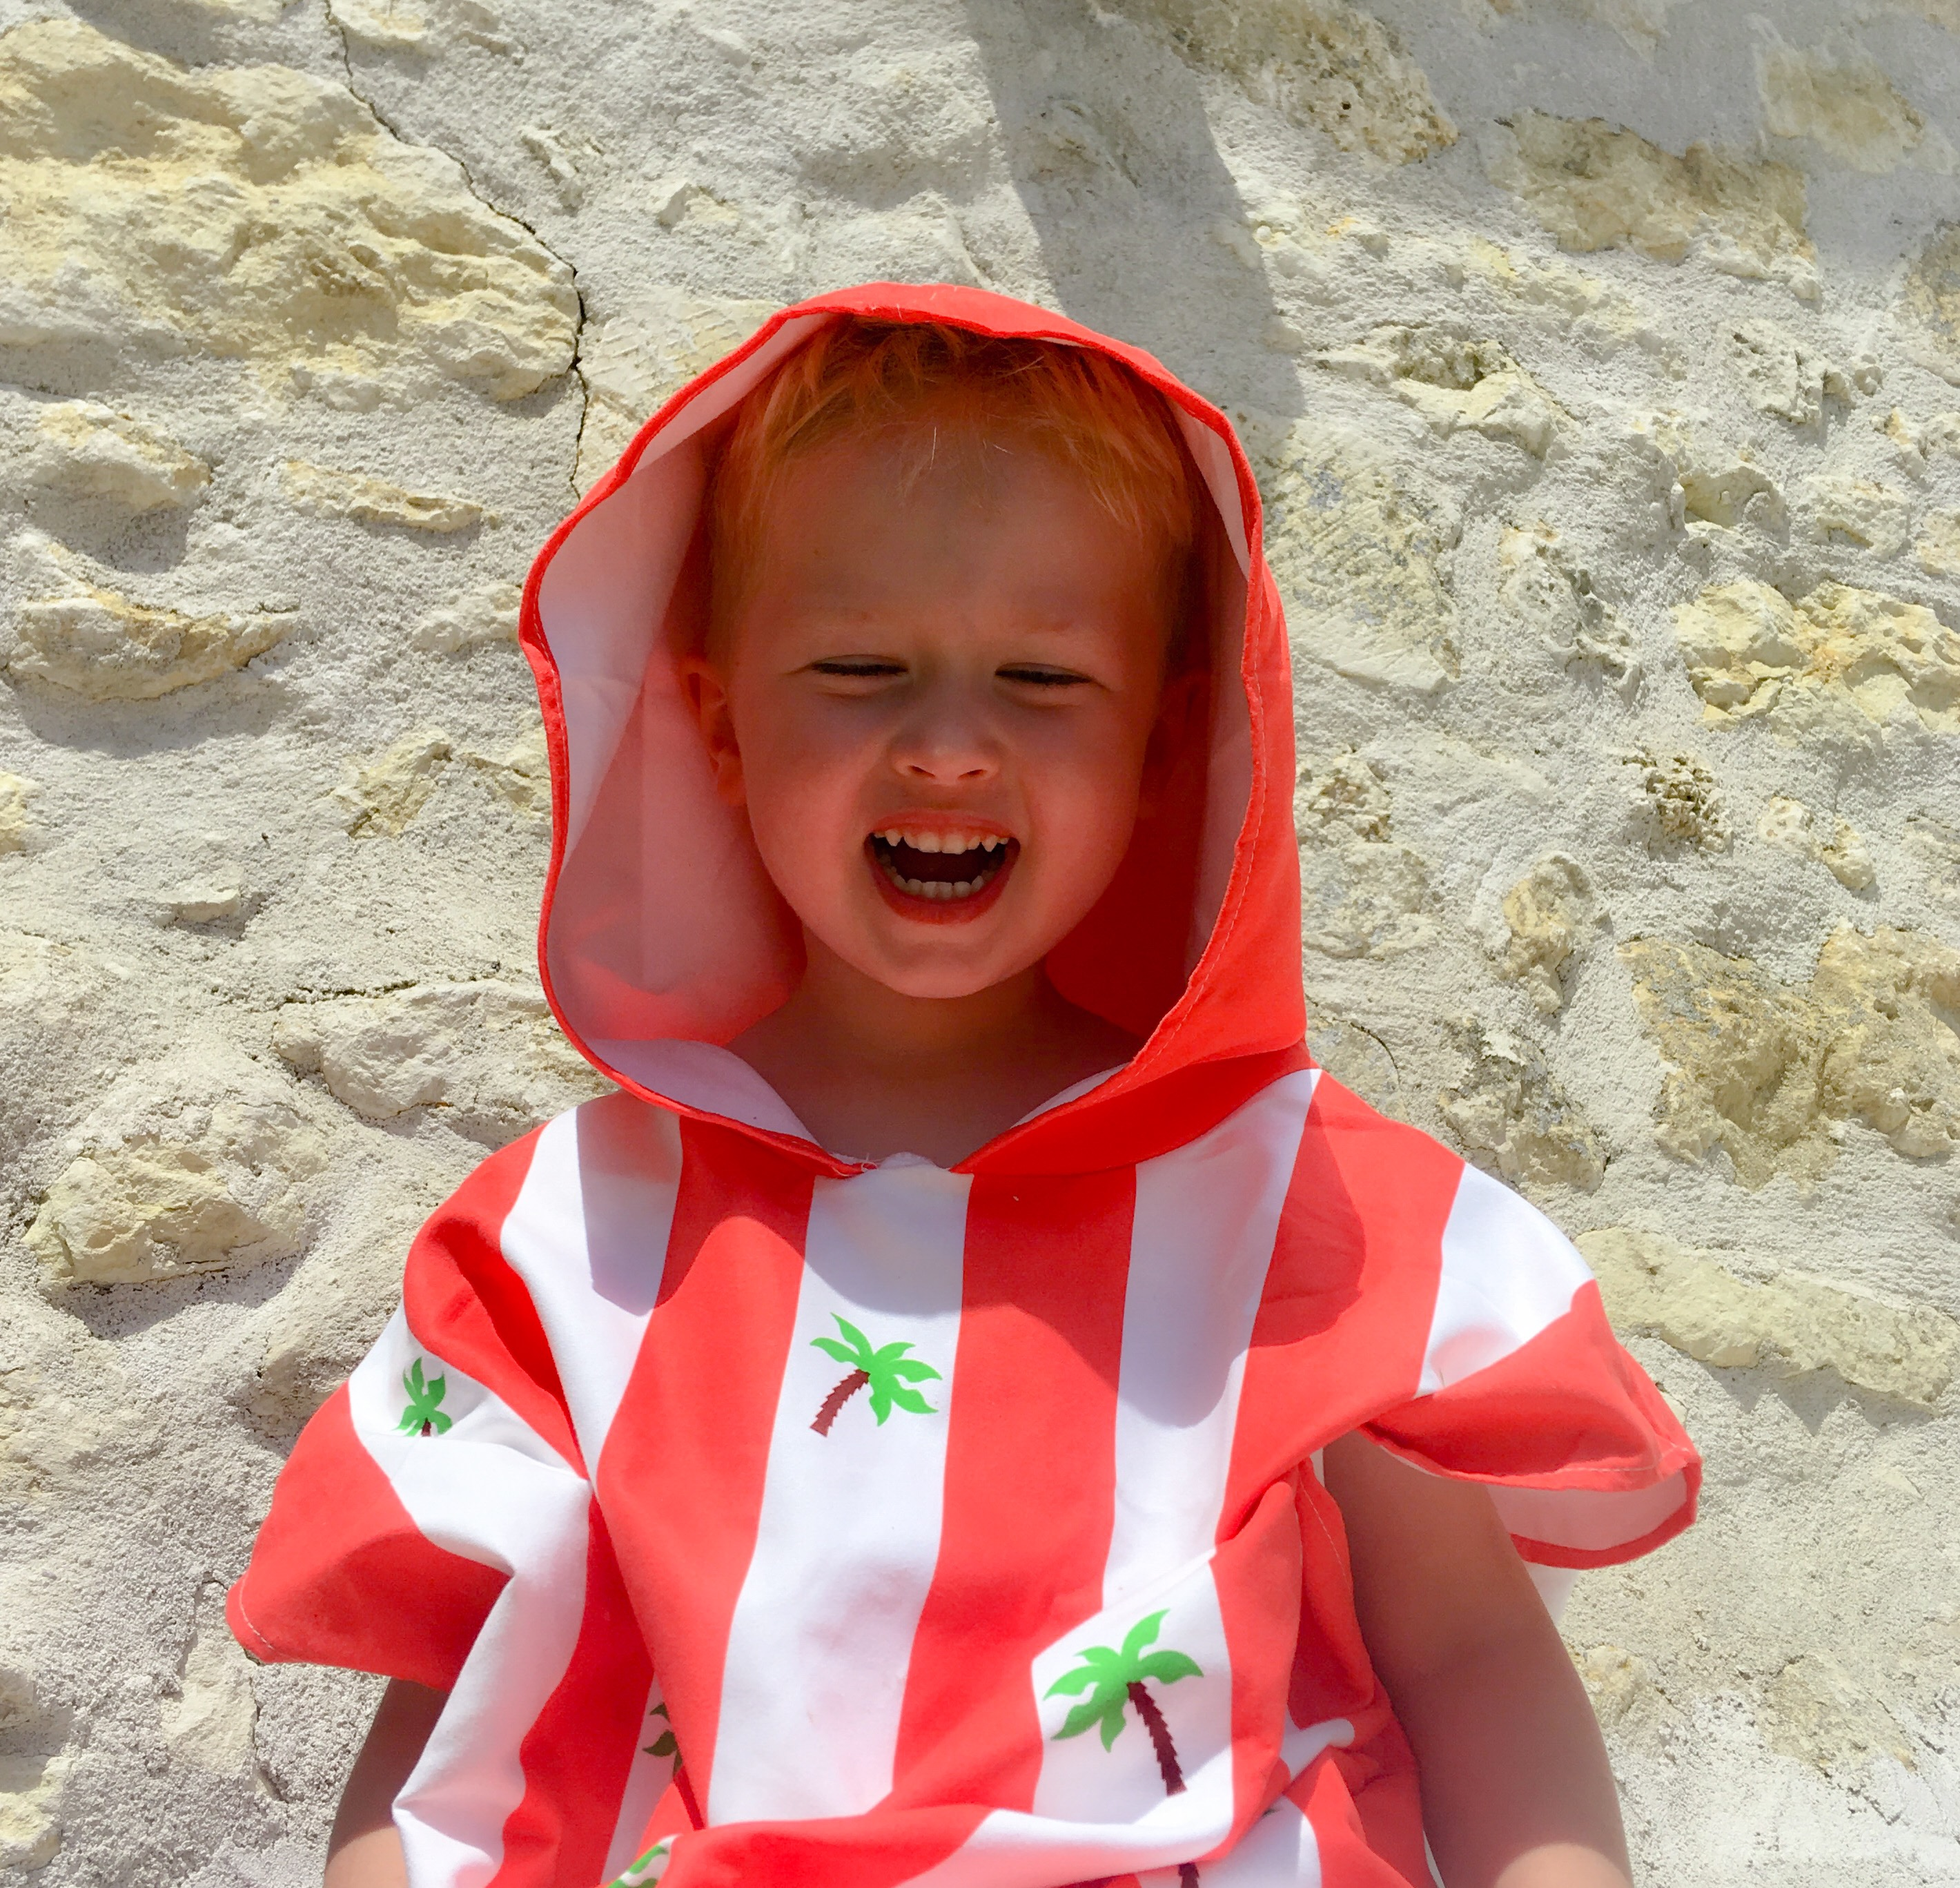 Lucas sat smiling wearing a stripy orange and white poncho with palm trees on